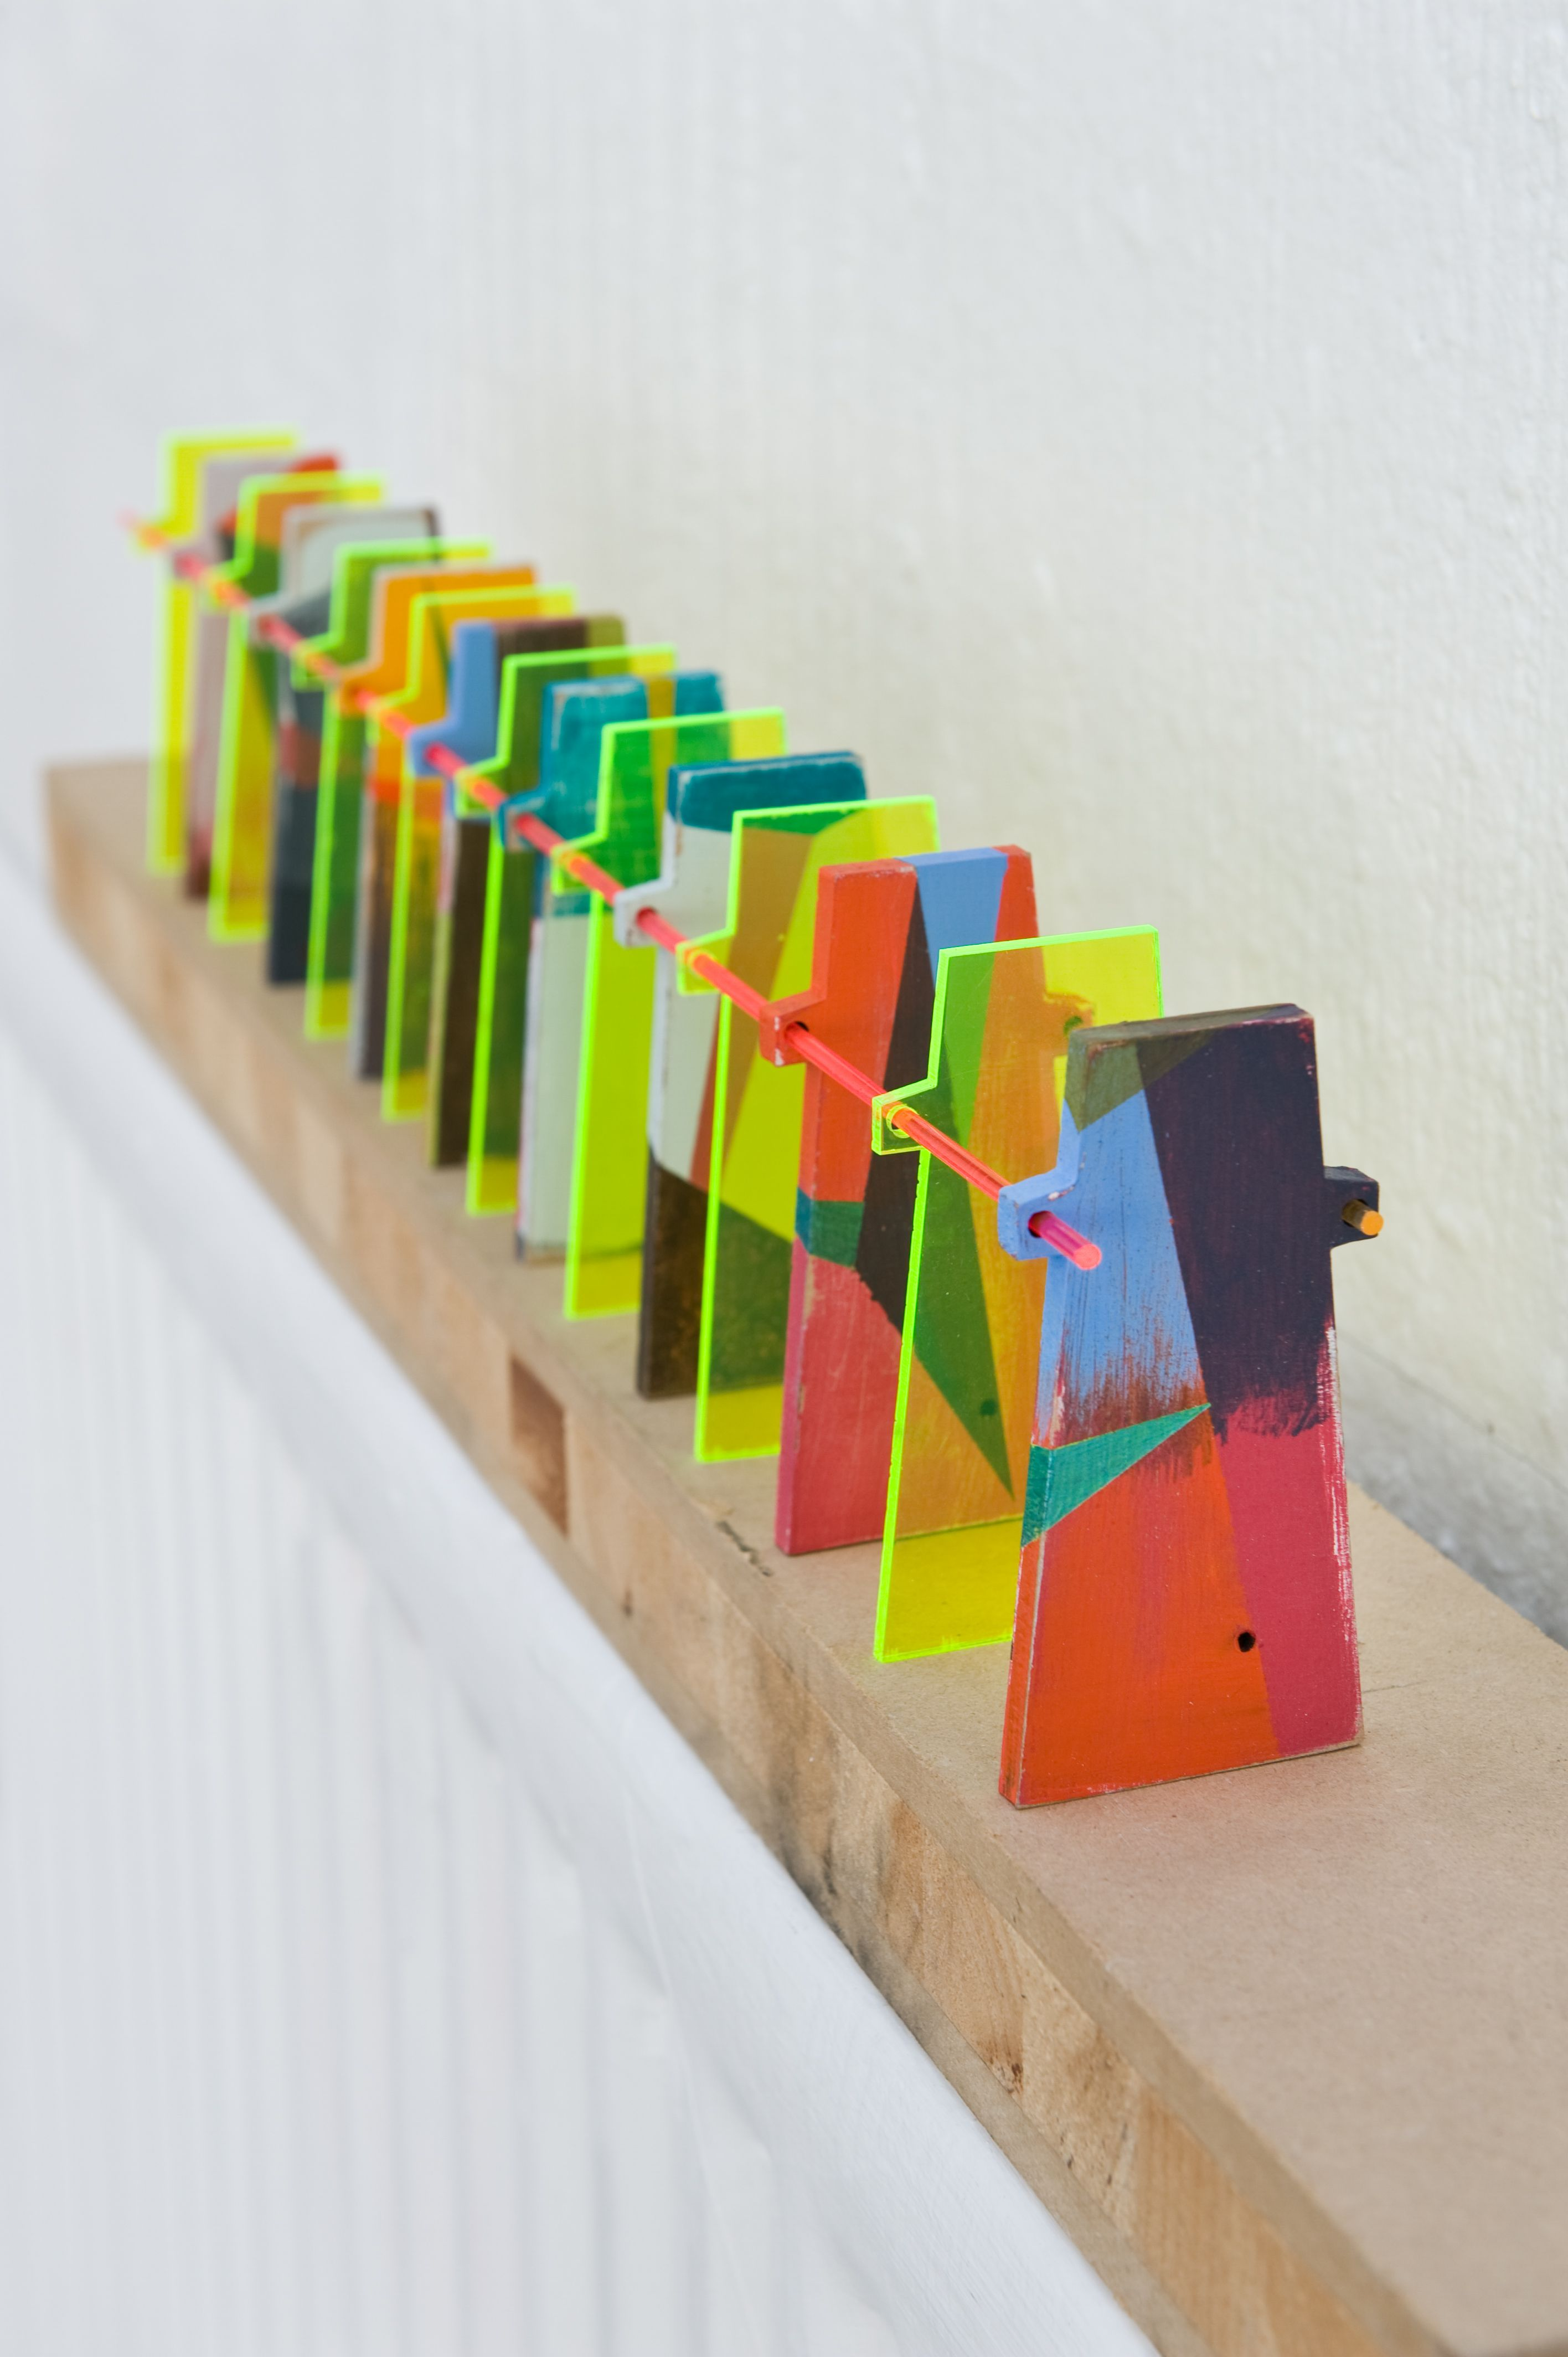 Ipoot S Army Mini Installation Acrylic On Wood And